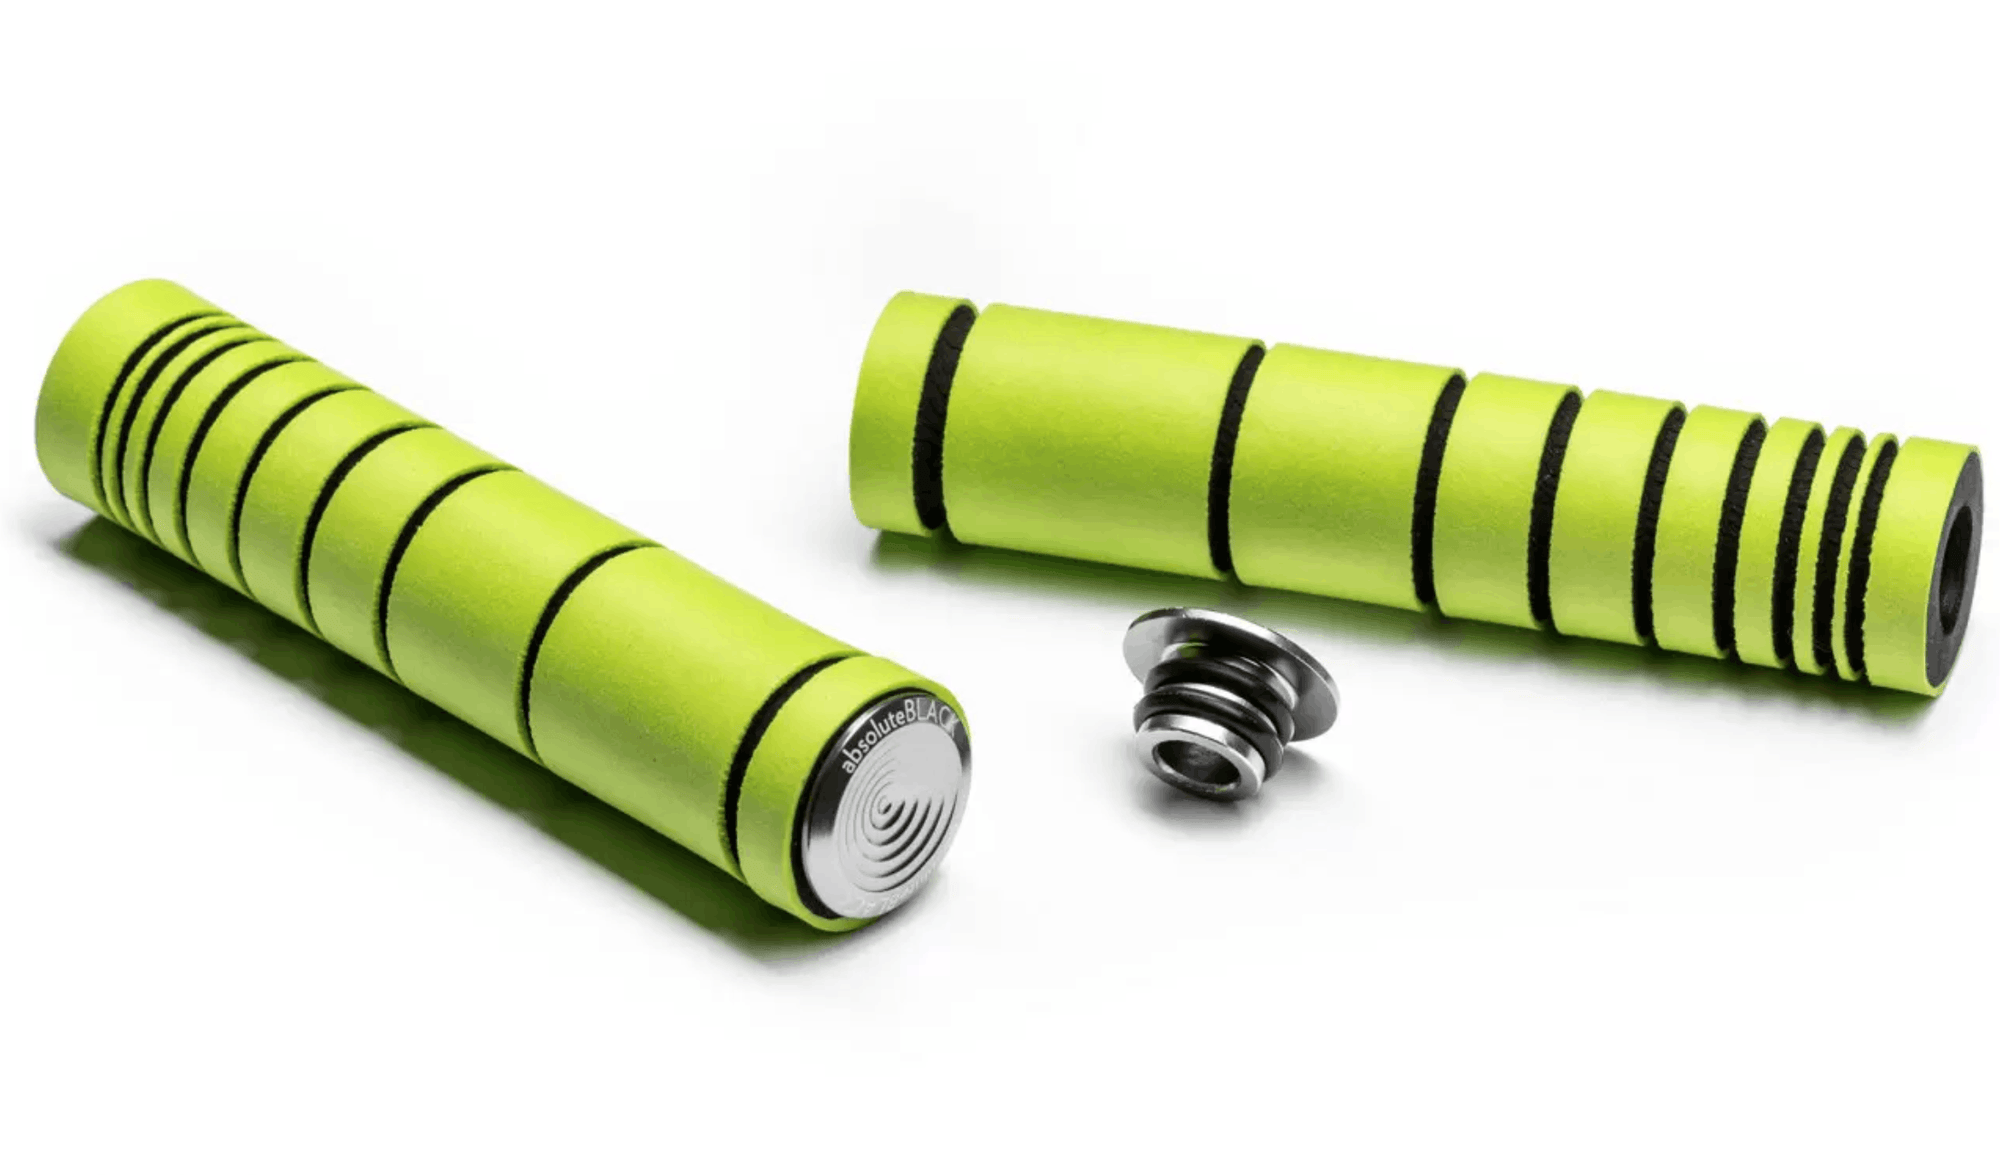 ABSOLUTEBLACK Premium Silicone Dual Density MTB Grips (Green)